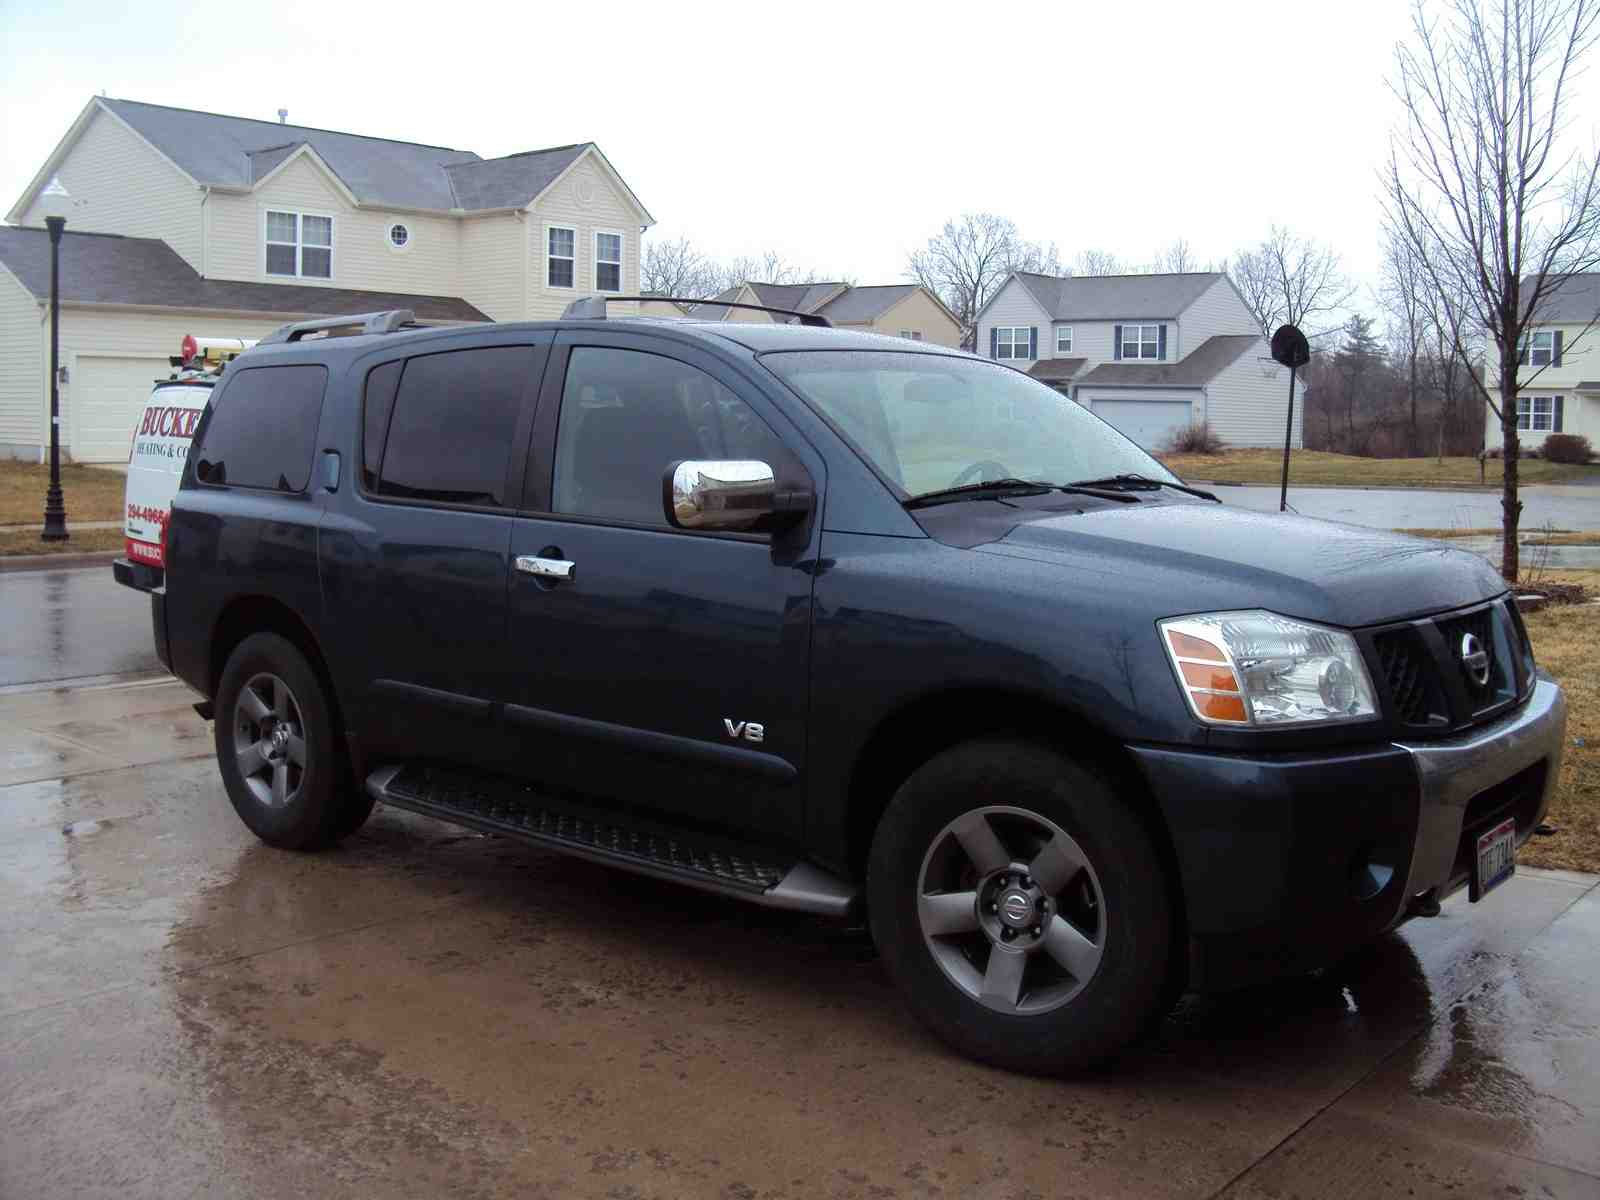 nissan armada model ta60 series workshop service repair manual 2005 7 500 pages 242mb. Black Bedroom Furniture Sets. Home Design Ideas